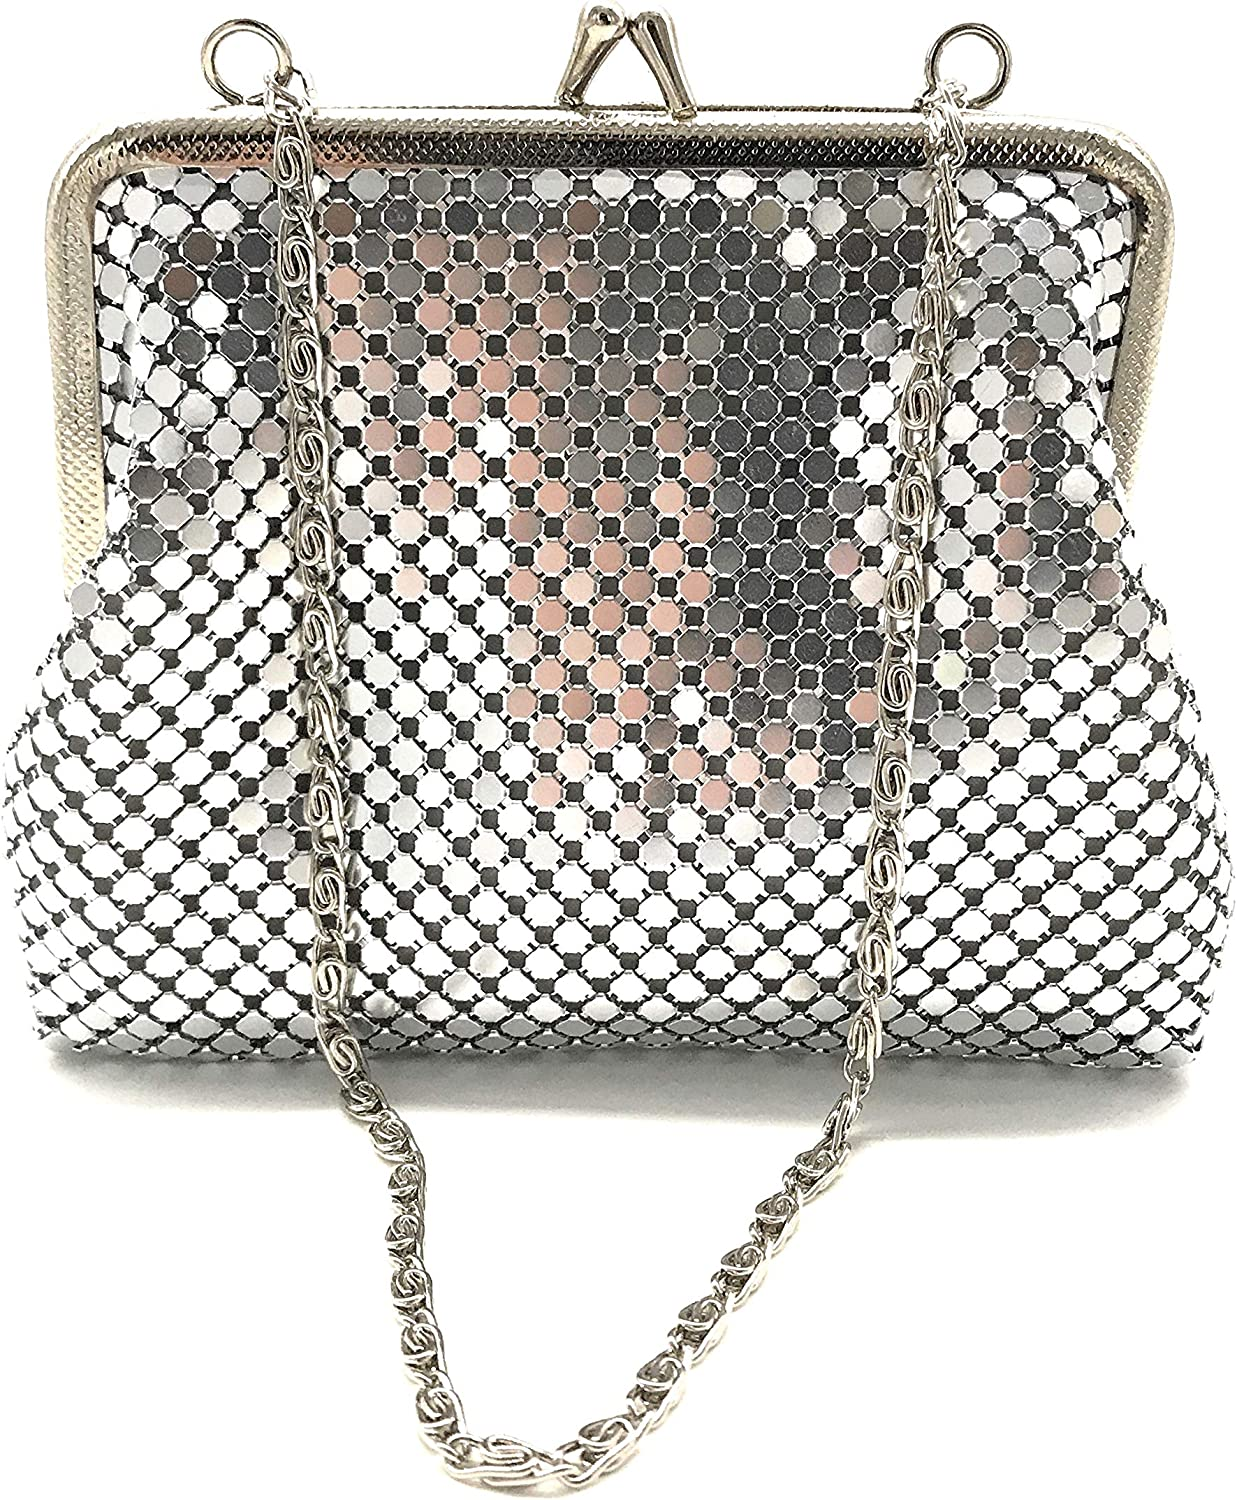 Small Women clutch Free Shipping New metal mesh purse for Hand Cocktai strap New York Mall carry